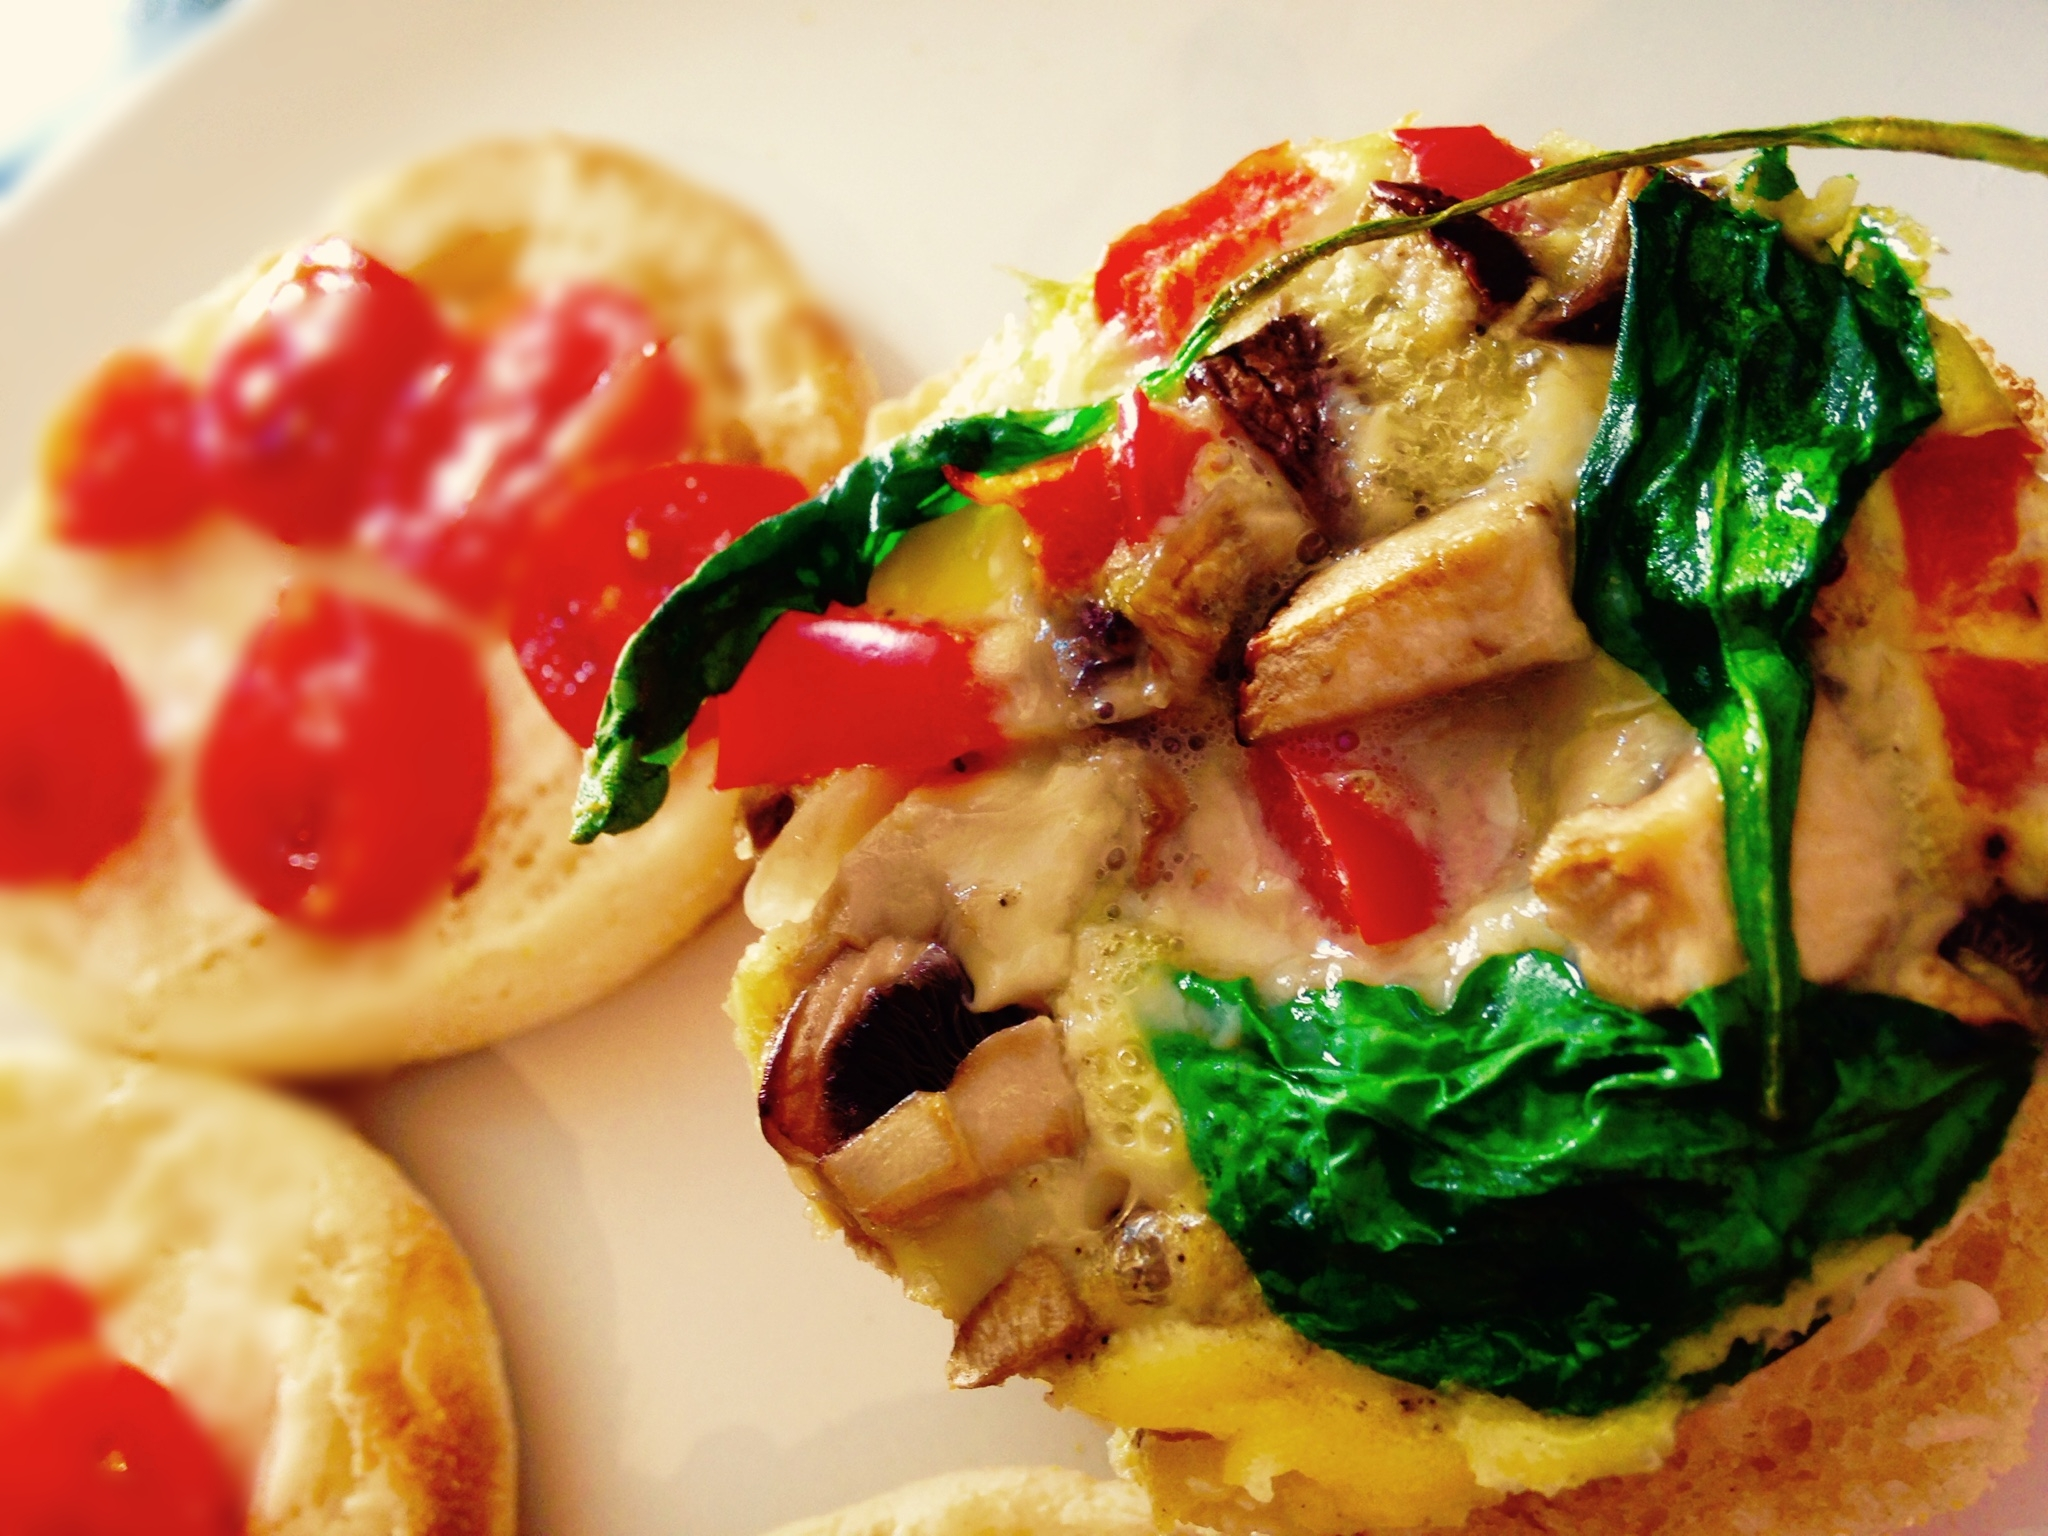 Eggs-on-the-go served on low calorie English Muffins (4 Weight Watchers Smart Points as shown here)